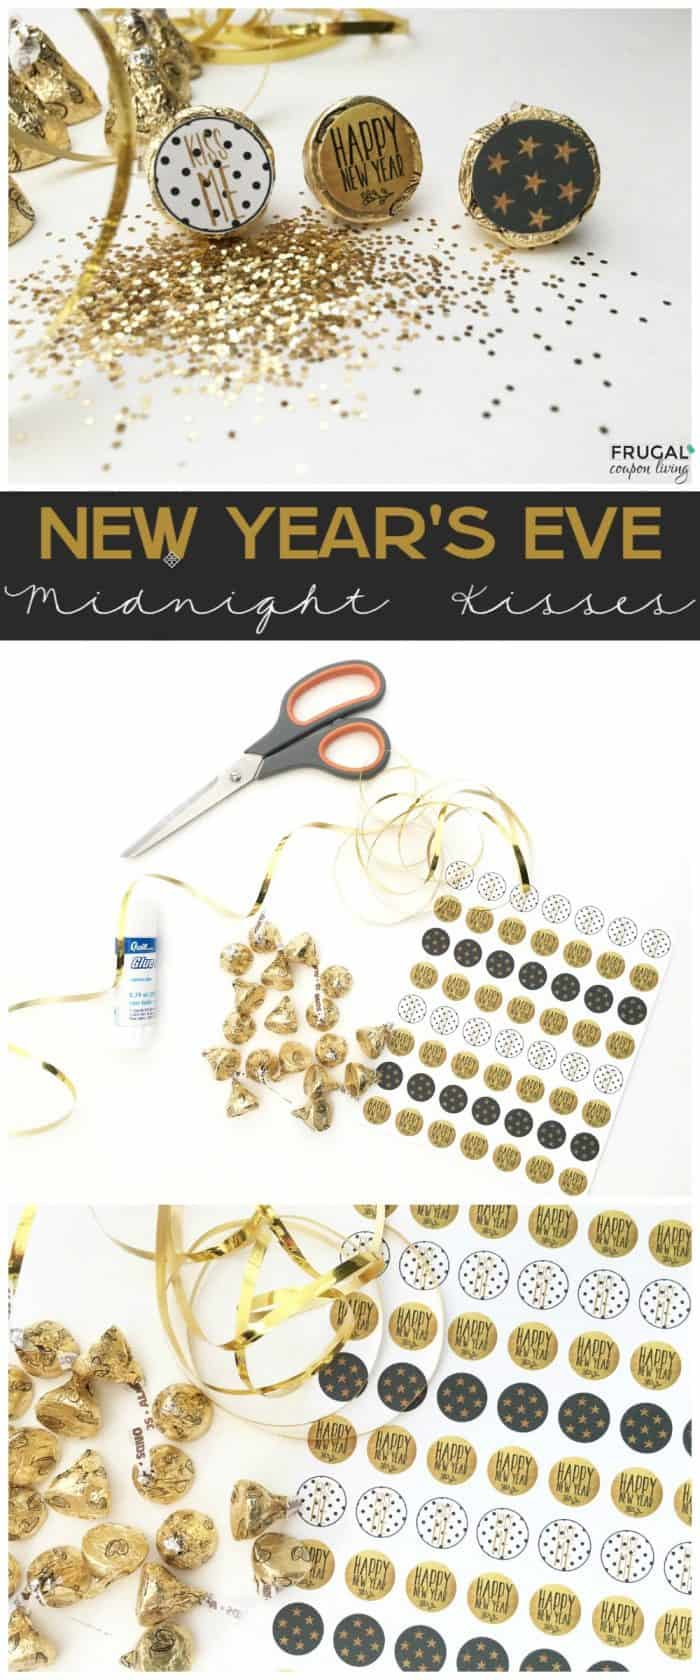 new-years-eve-midnight-kisses-frugal-coupon-living-long